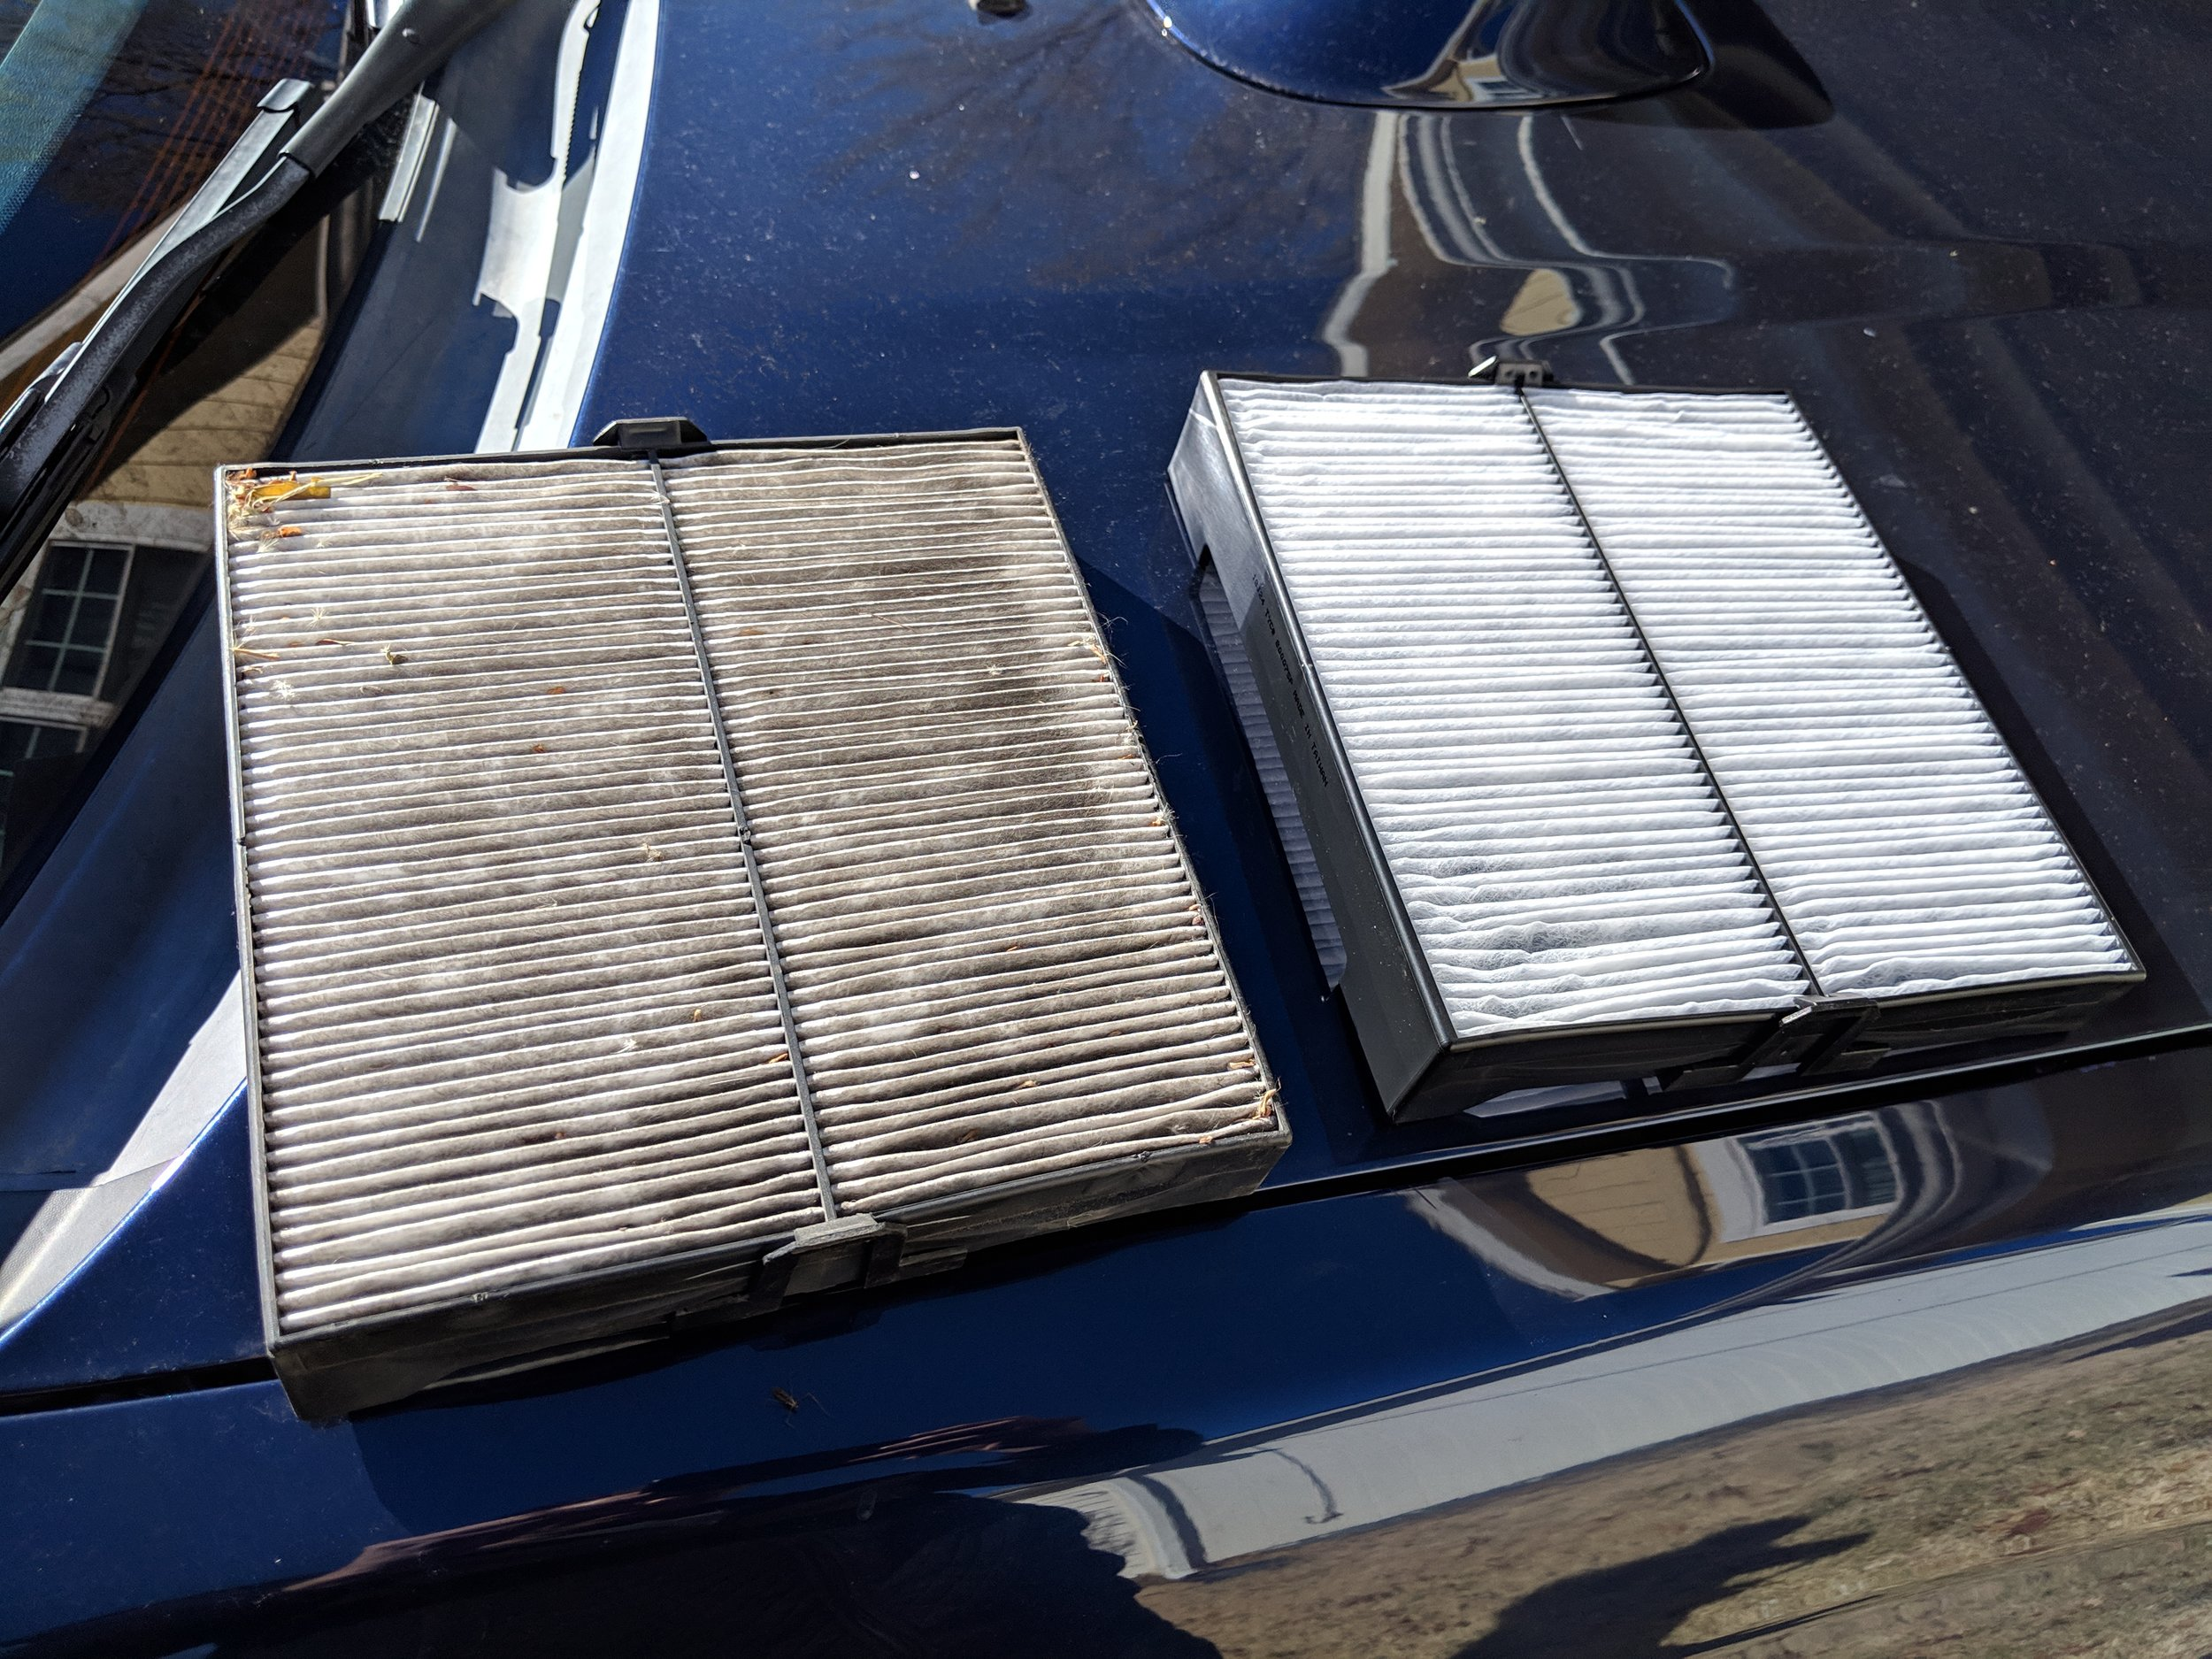 If you can't remember the last time you changed yoru cabin filter or just bought the car, it is probably time to change it! DIY link here for  03-08 Foresters: Cabin filter replacement